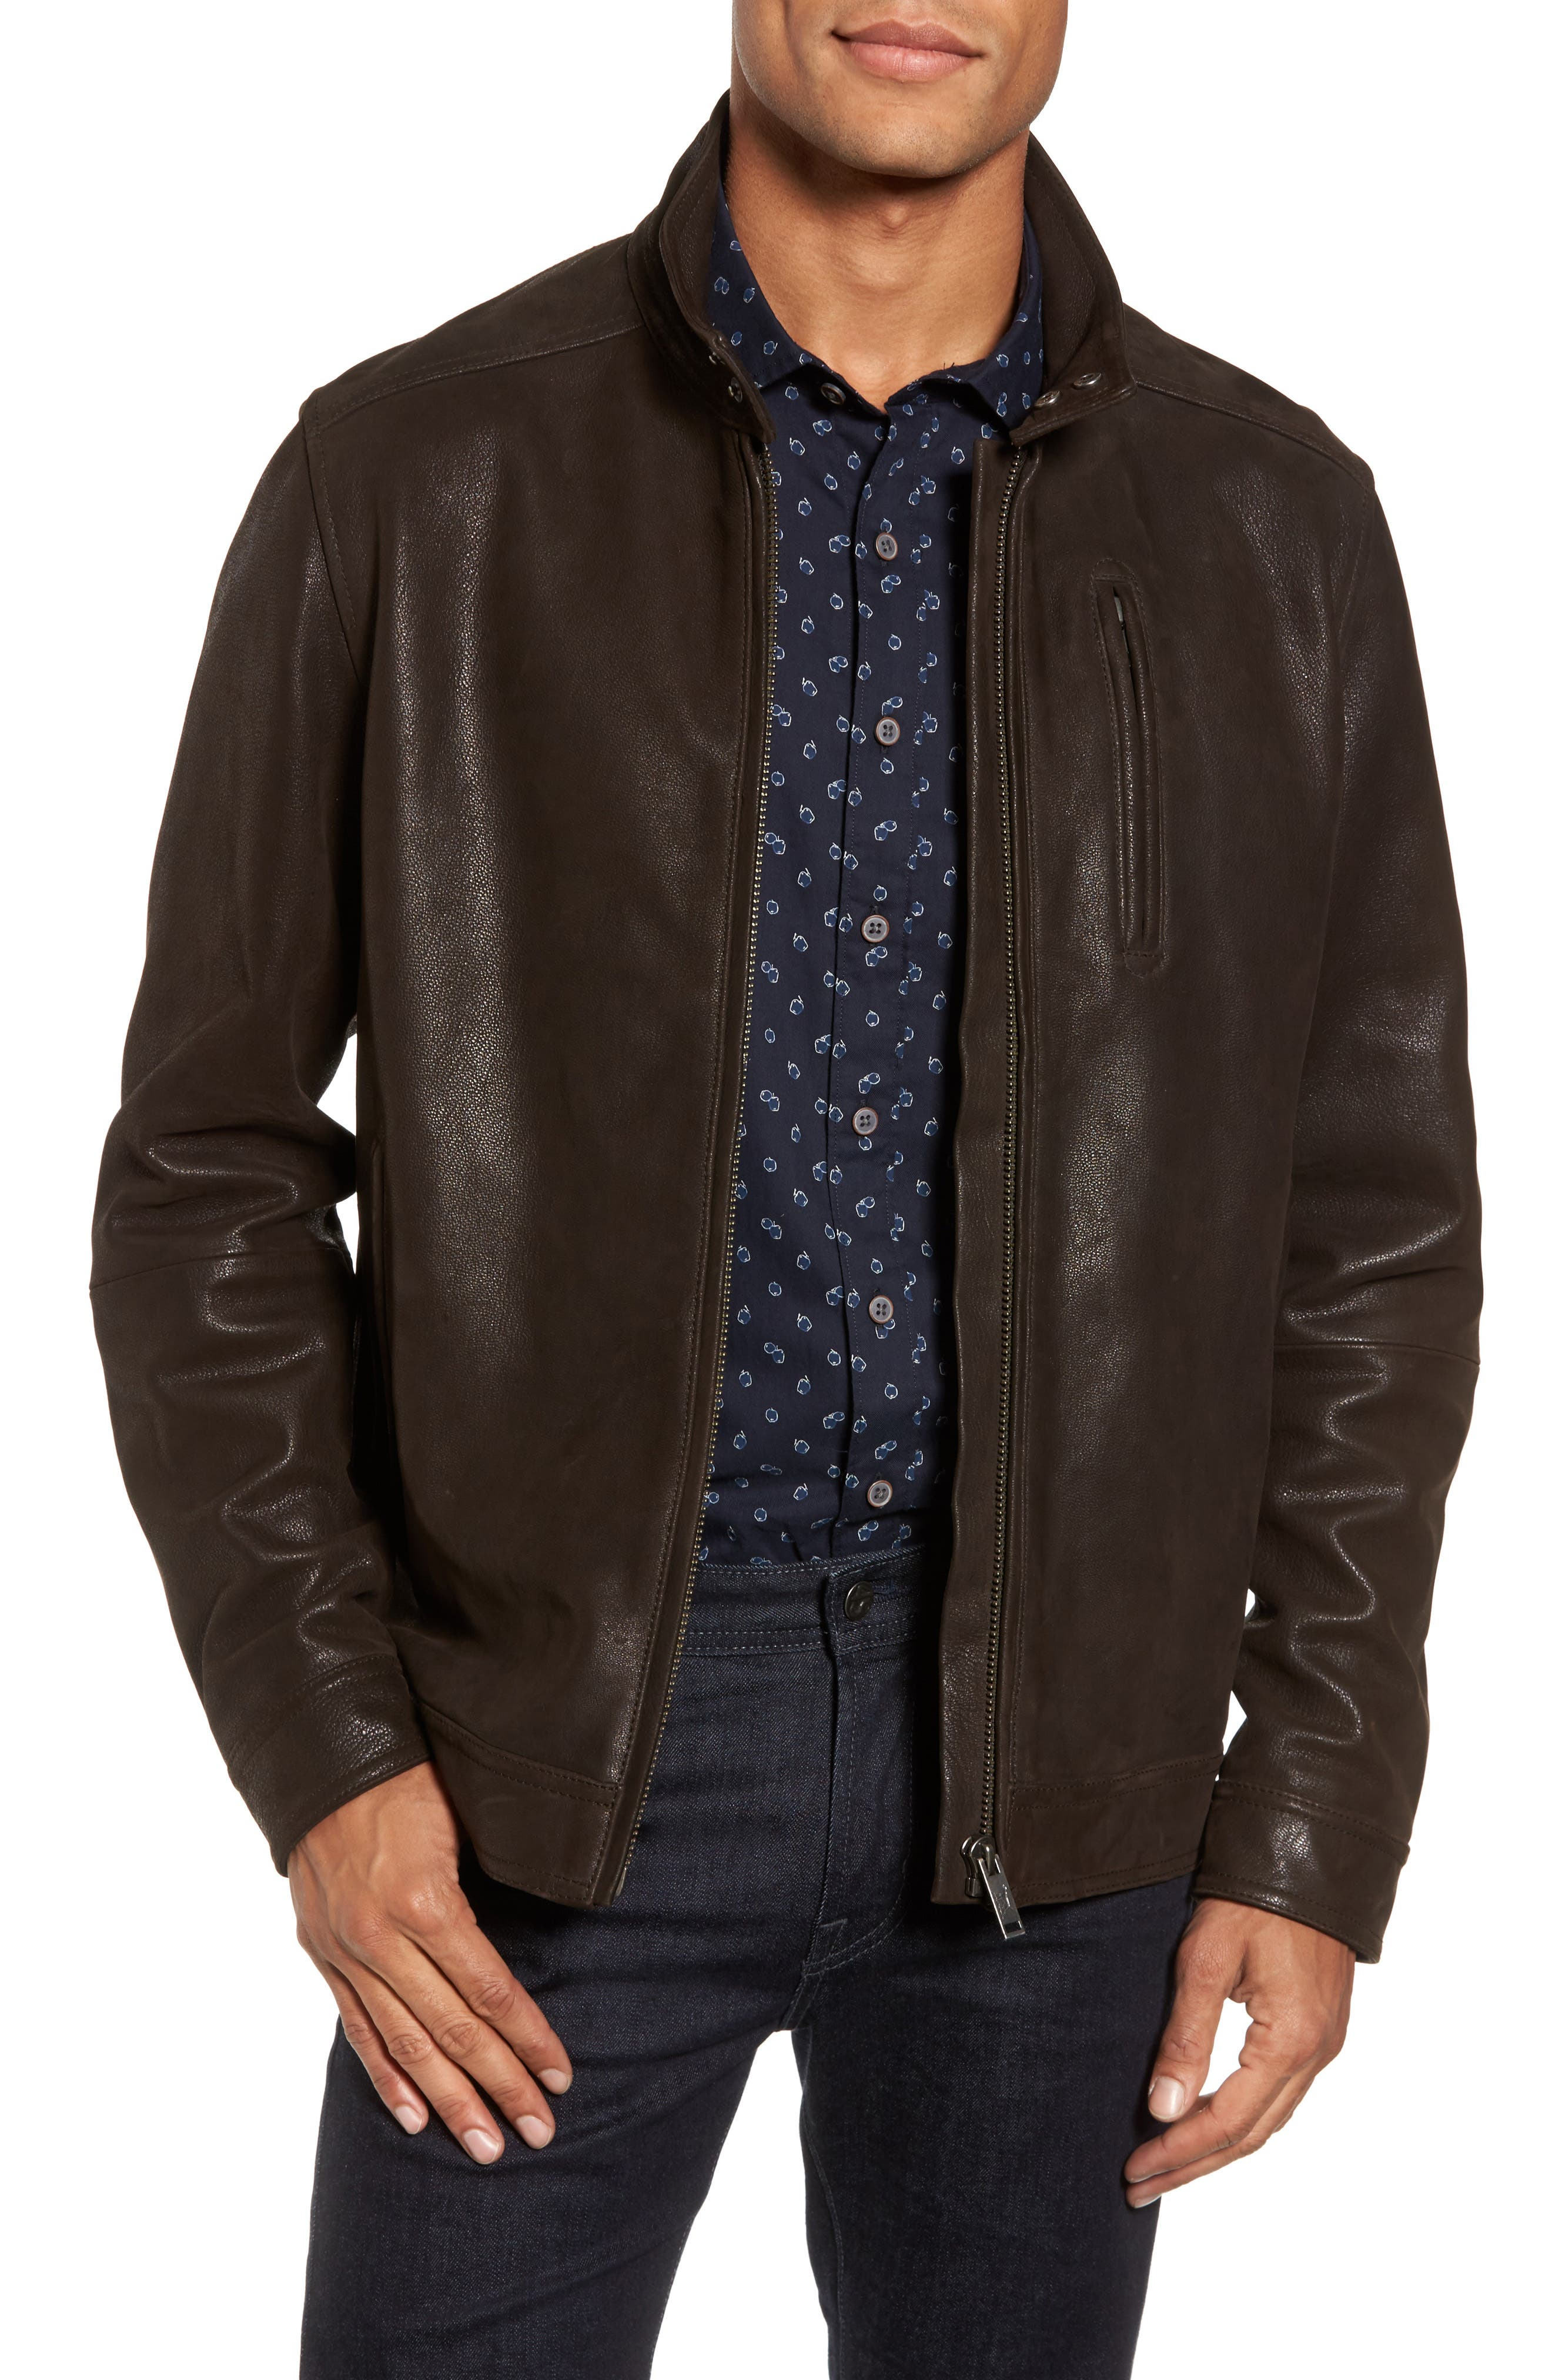 Main Image - Rodd & Gunn Westhaven Distressed Leather Bomber Jacket